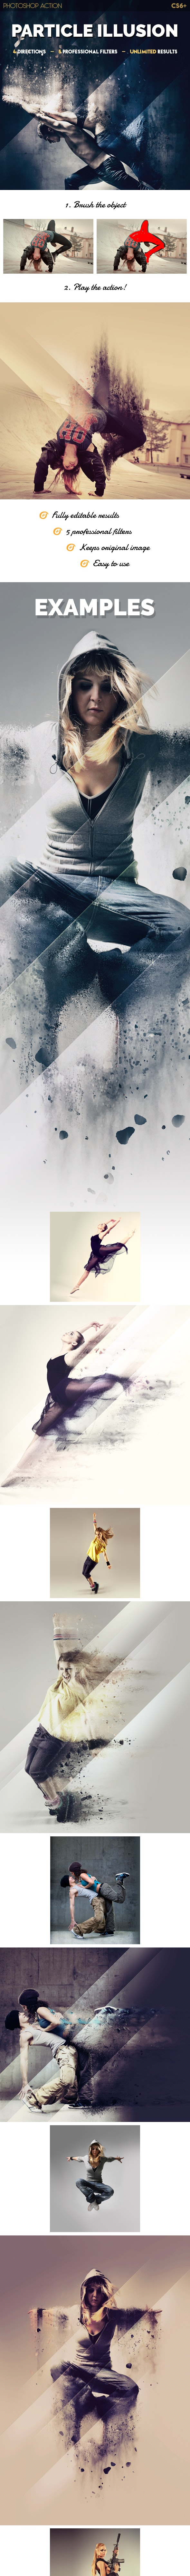 Particle Illusion Photoshop Action - Photo Effects Actions